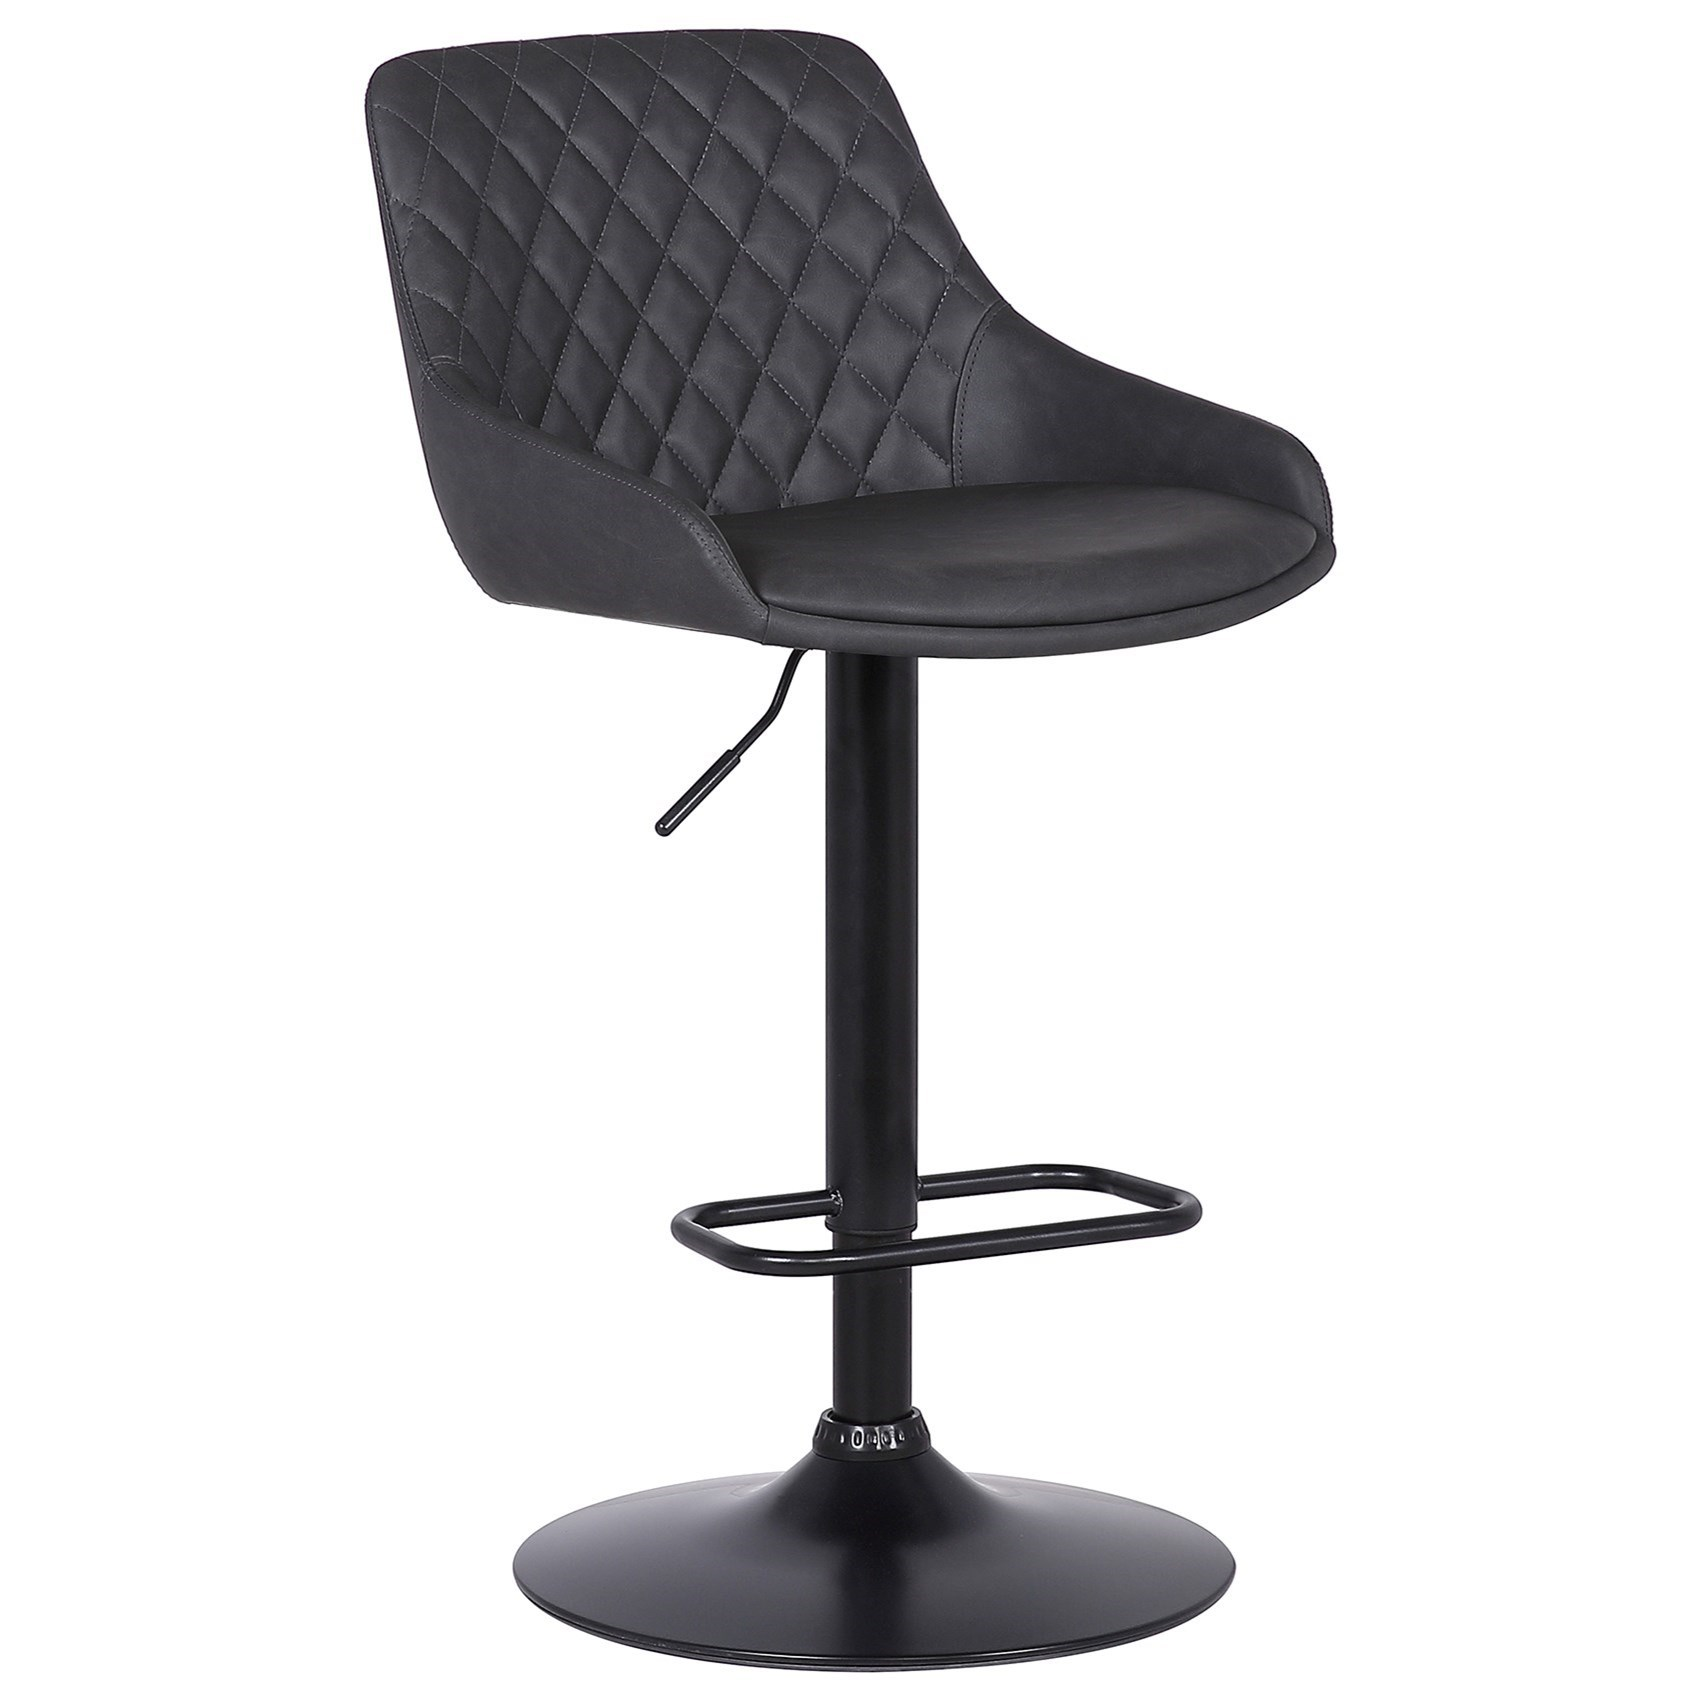 Anibal  Contemporary Adjustable Barstool in Black by Armen Living at Fisher Home Furnishings